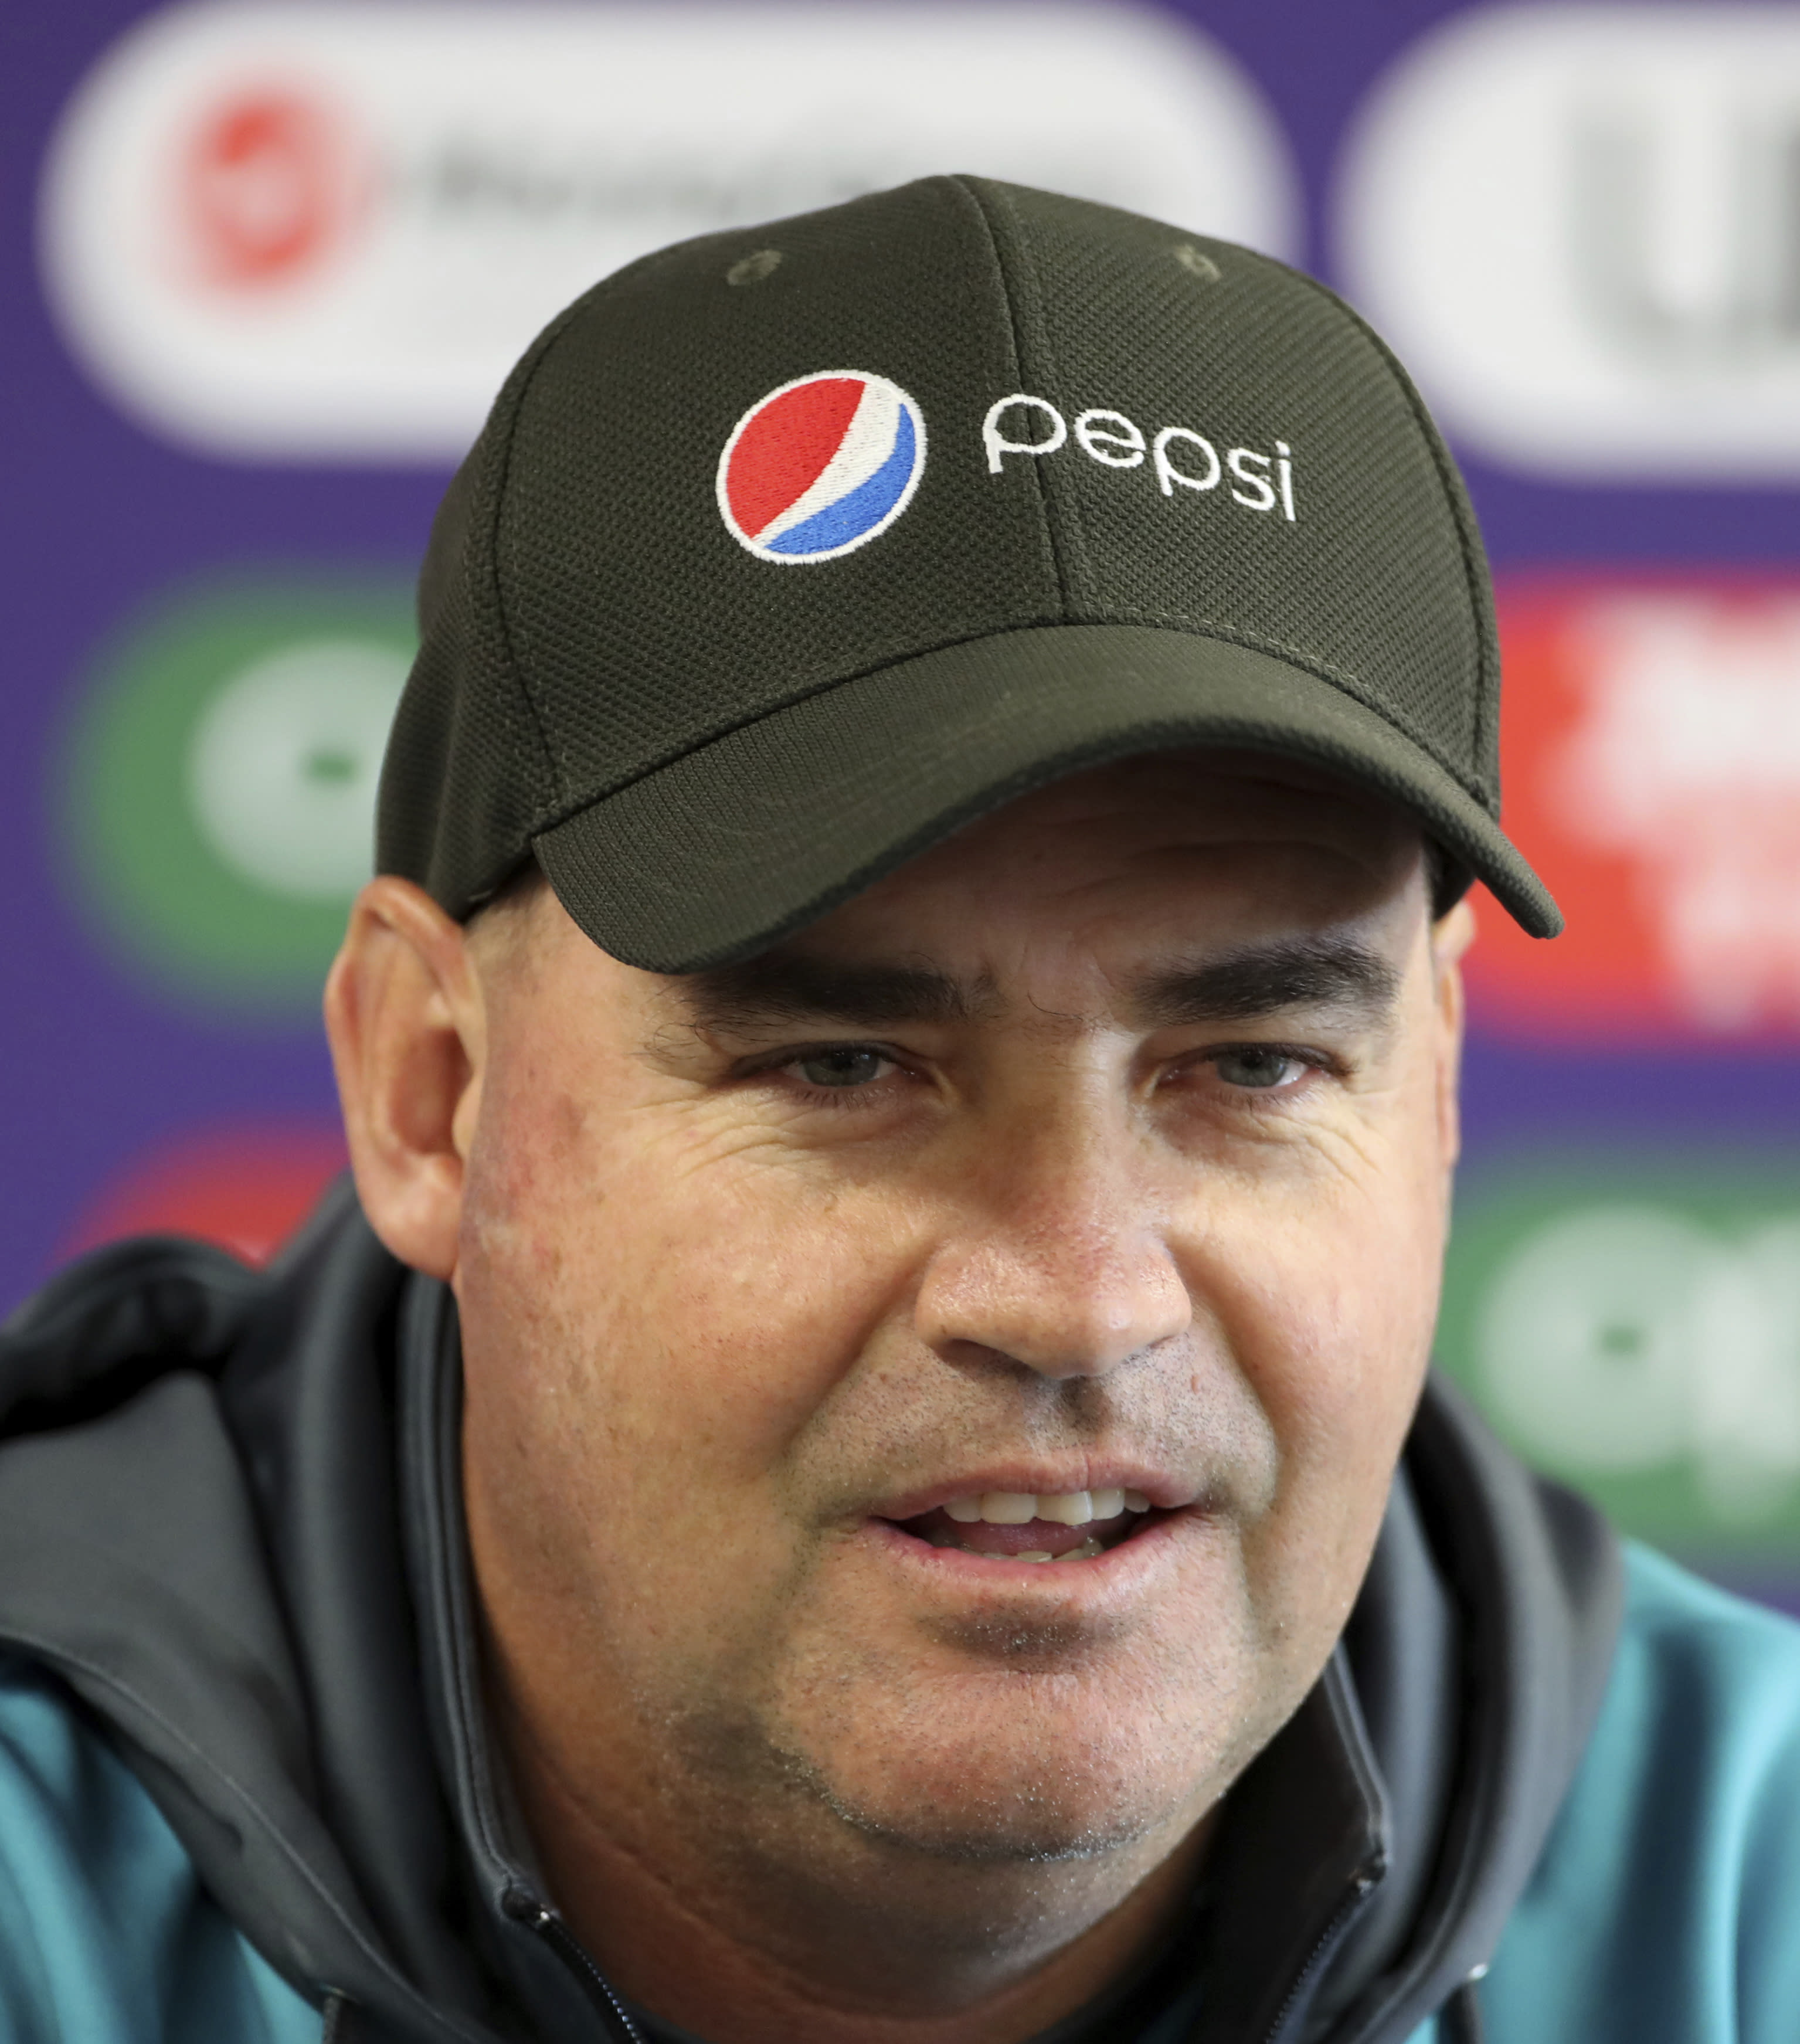 Pakistan's coach Mickey Arthur speaks during a press conference ahead of their Cricket World Cup match against India at Old Trafford in Manchester, England, Saturday, June 15, 2019. (AP Photo/Aijaz Rahi)